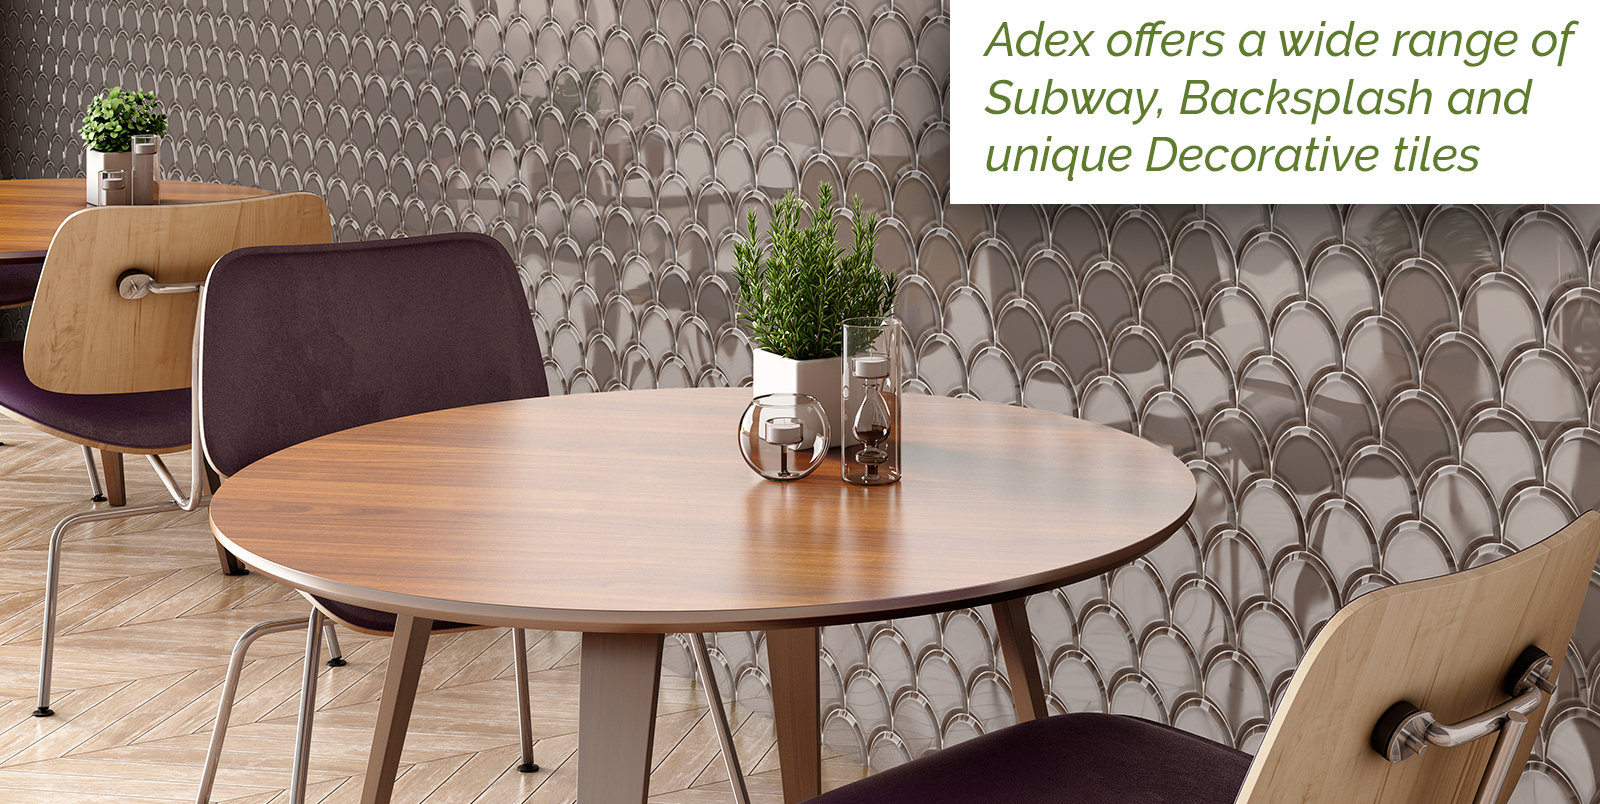 Adex Subway Tiles